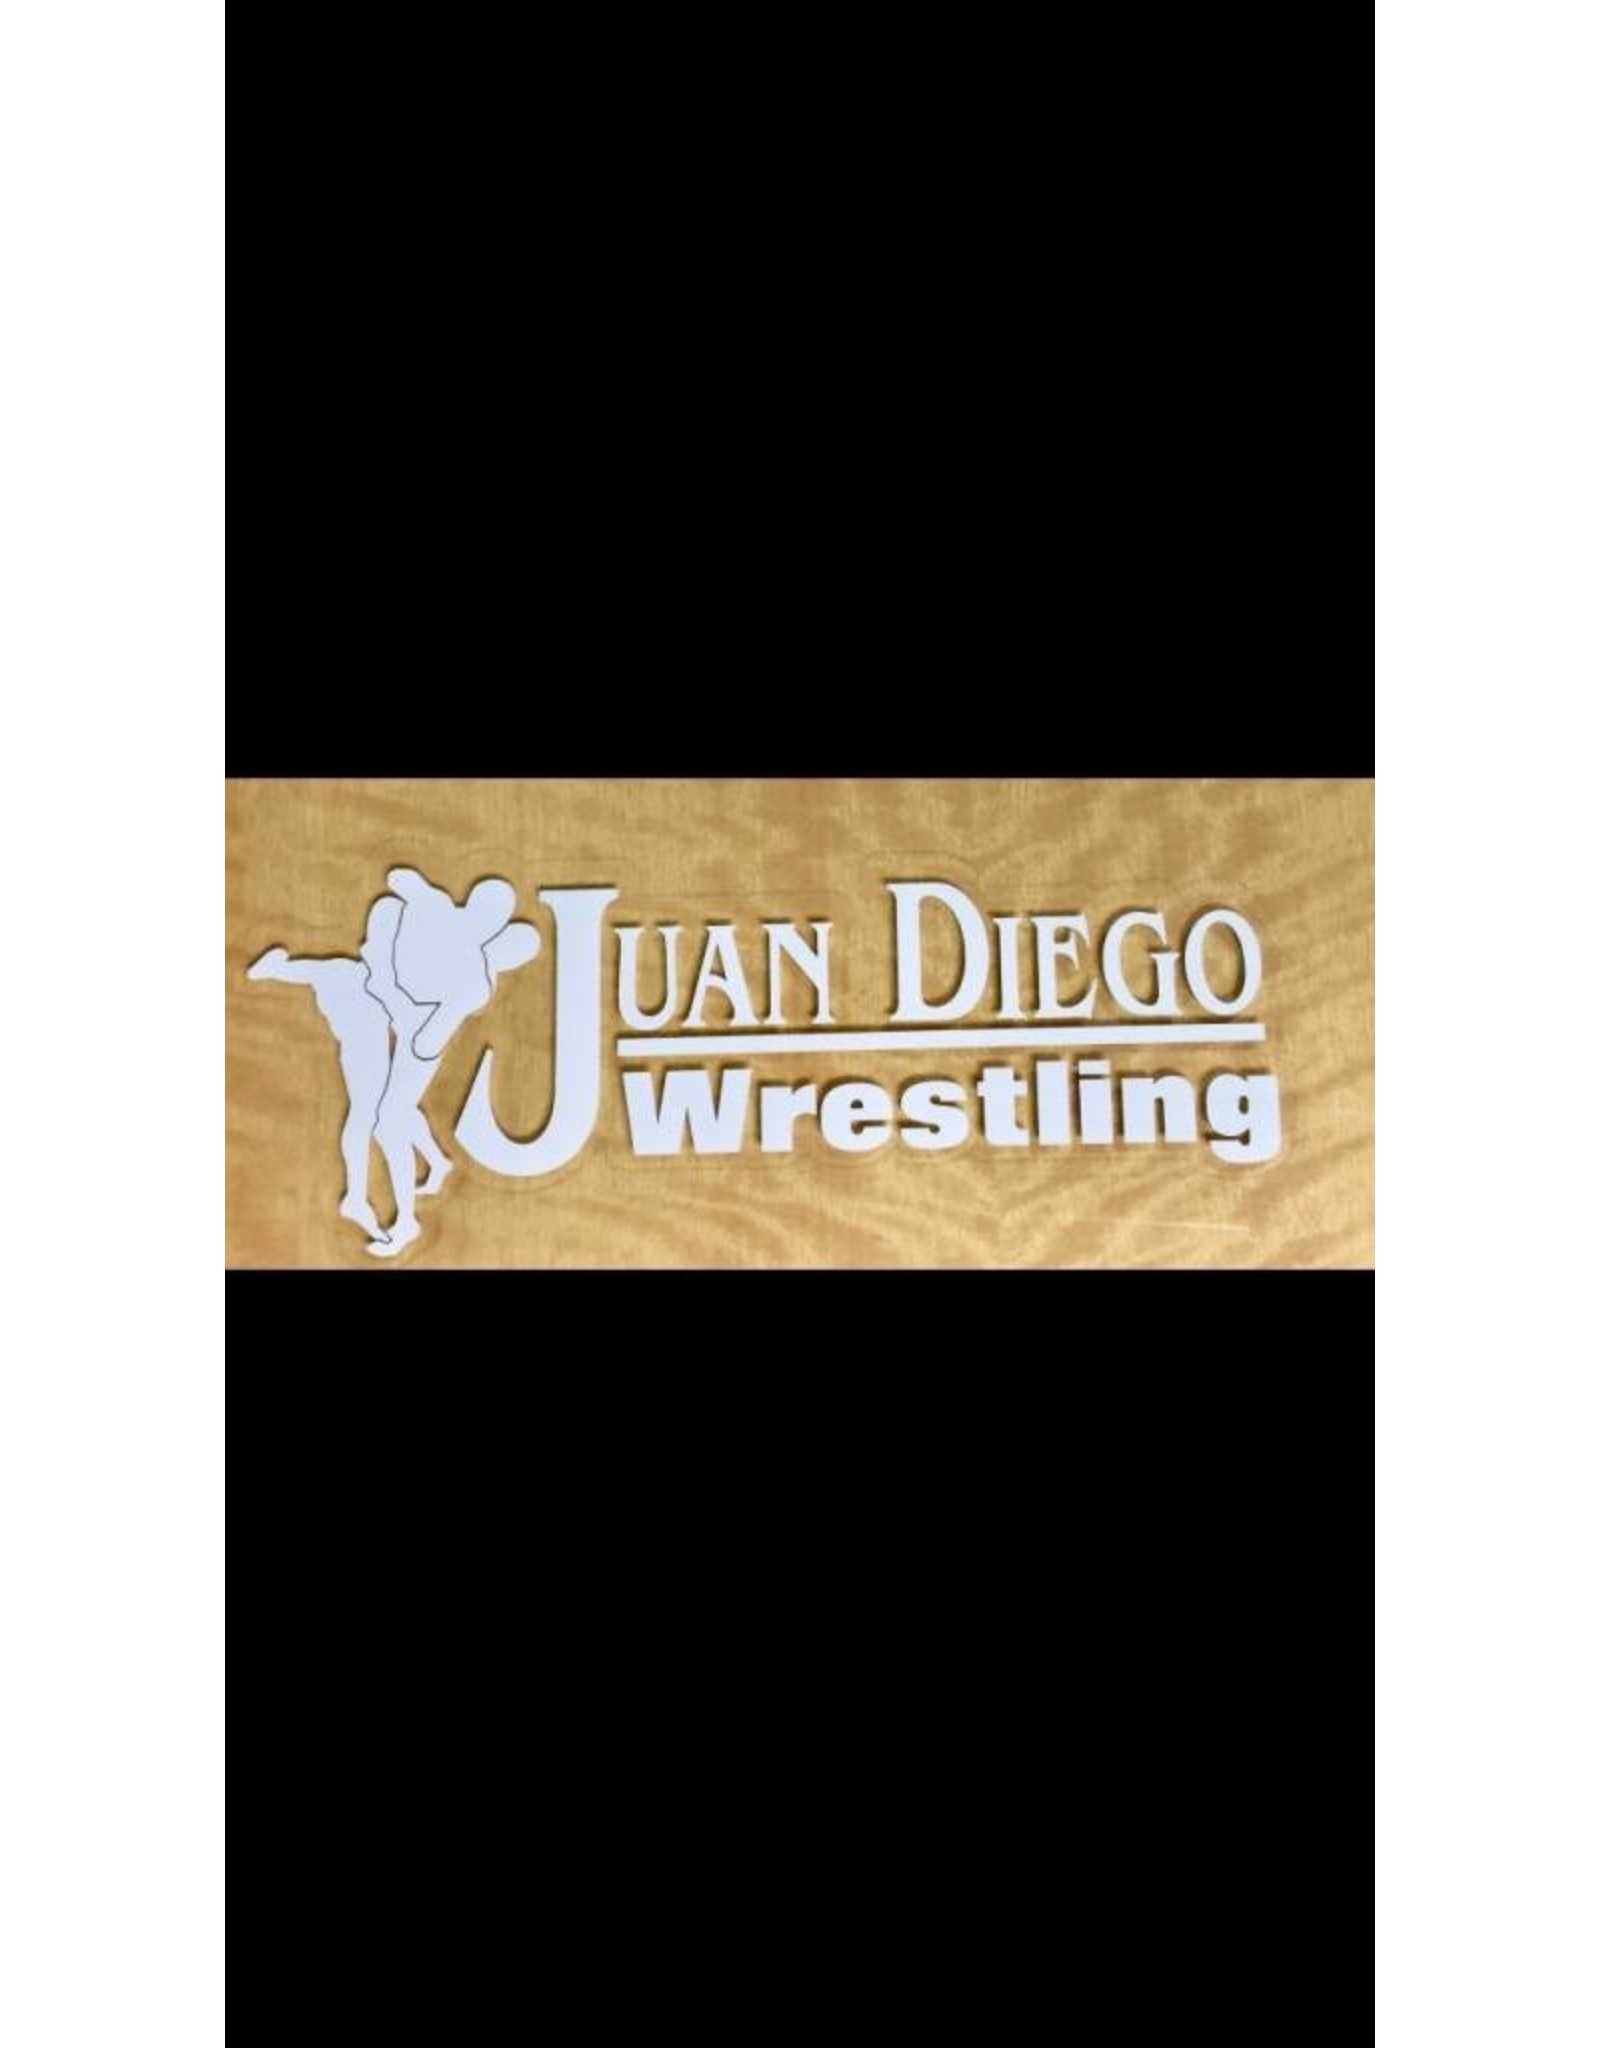 NON-UNIFORM Wrestling- Decal, clearance, sold as is